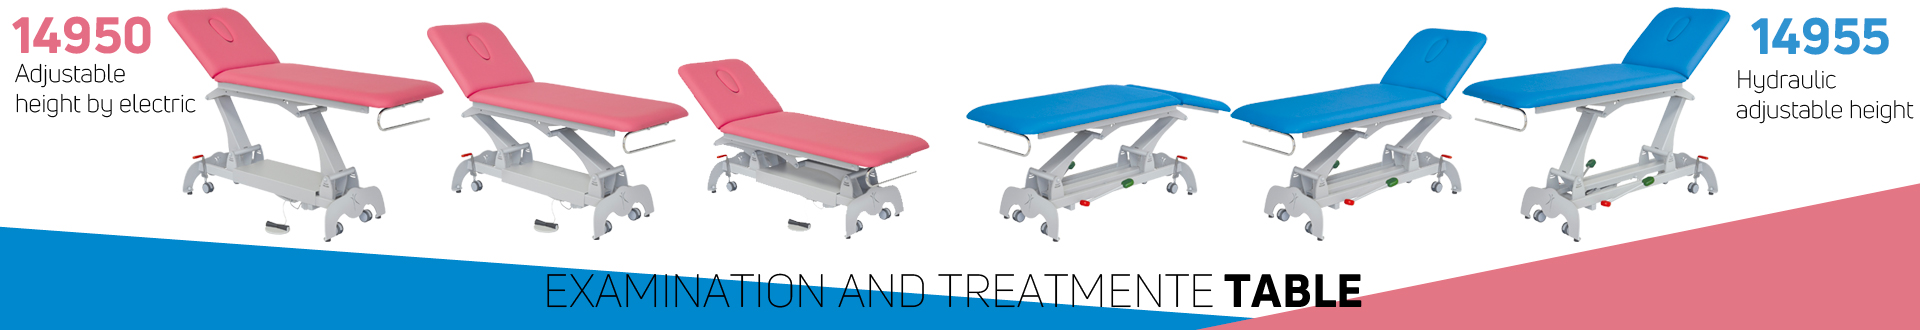 Examination and treatment table - Inmoclinc